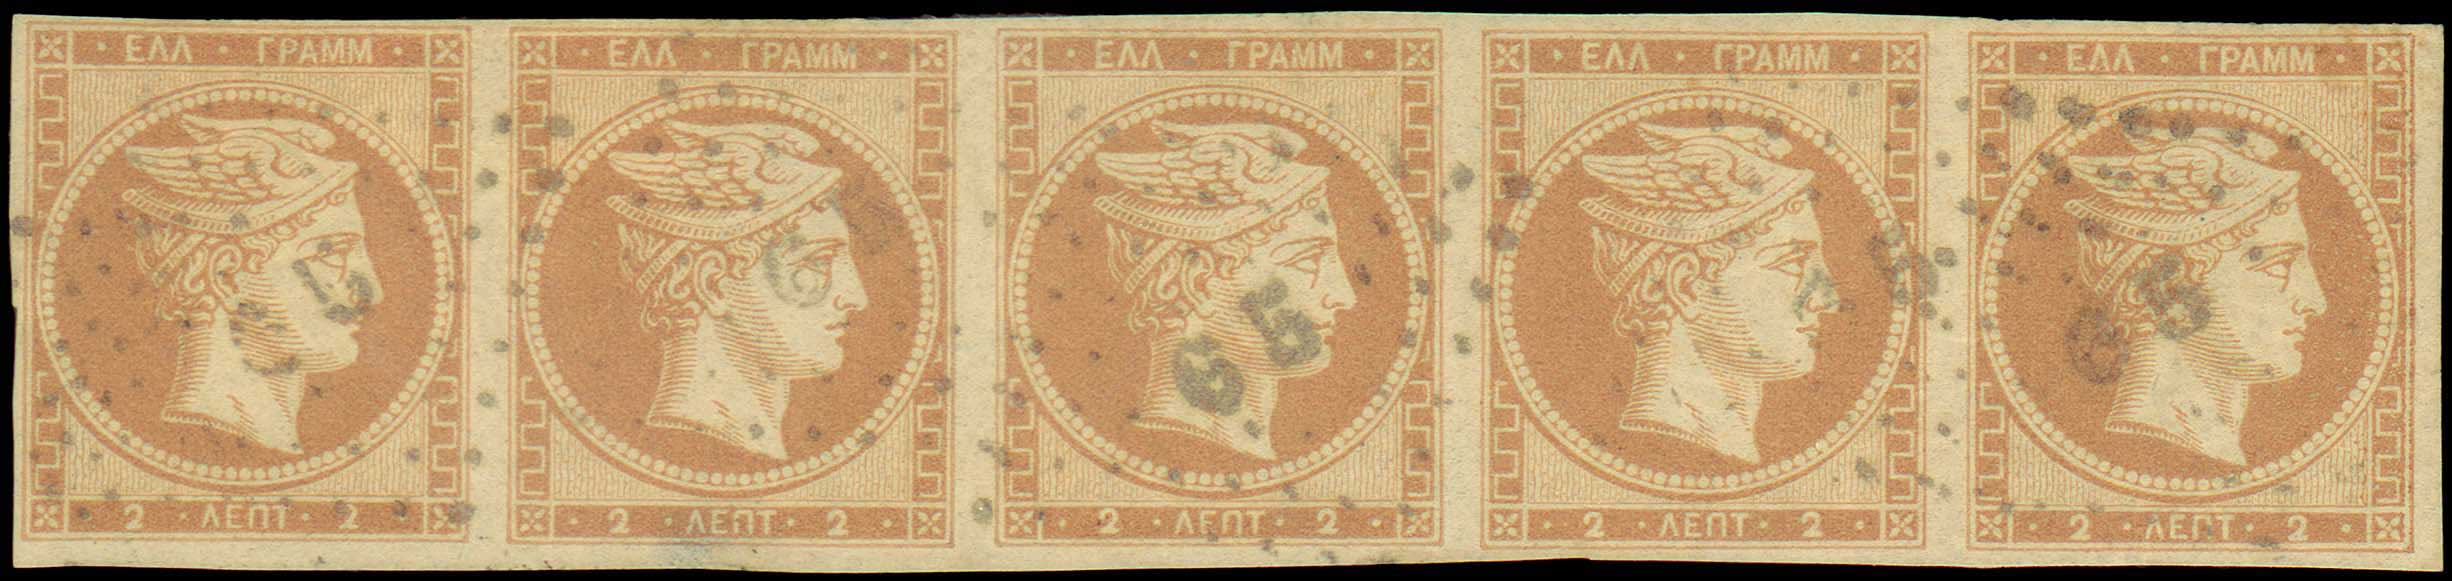 Lot 46 - GREECE-  LARGE HERMES HEAD 1861/1862 athens provisional printings -  A. Karamitsos Public Auction 602 General Stamp Sale